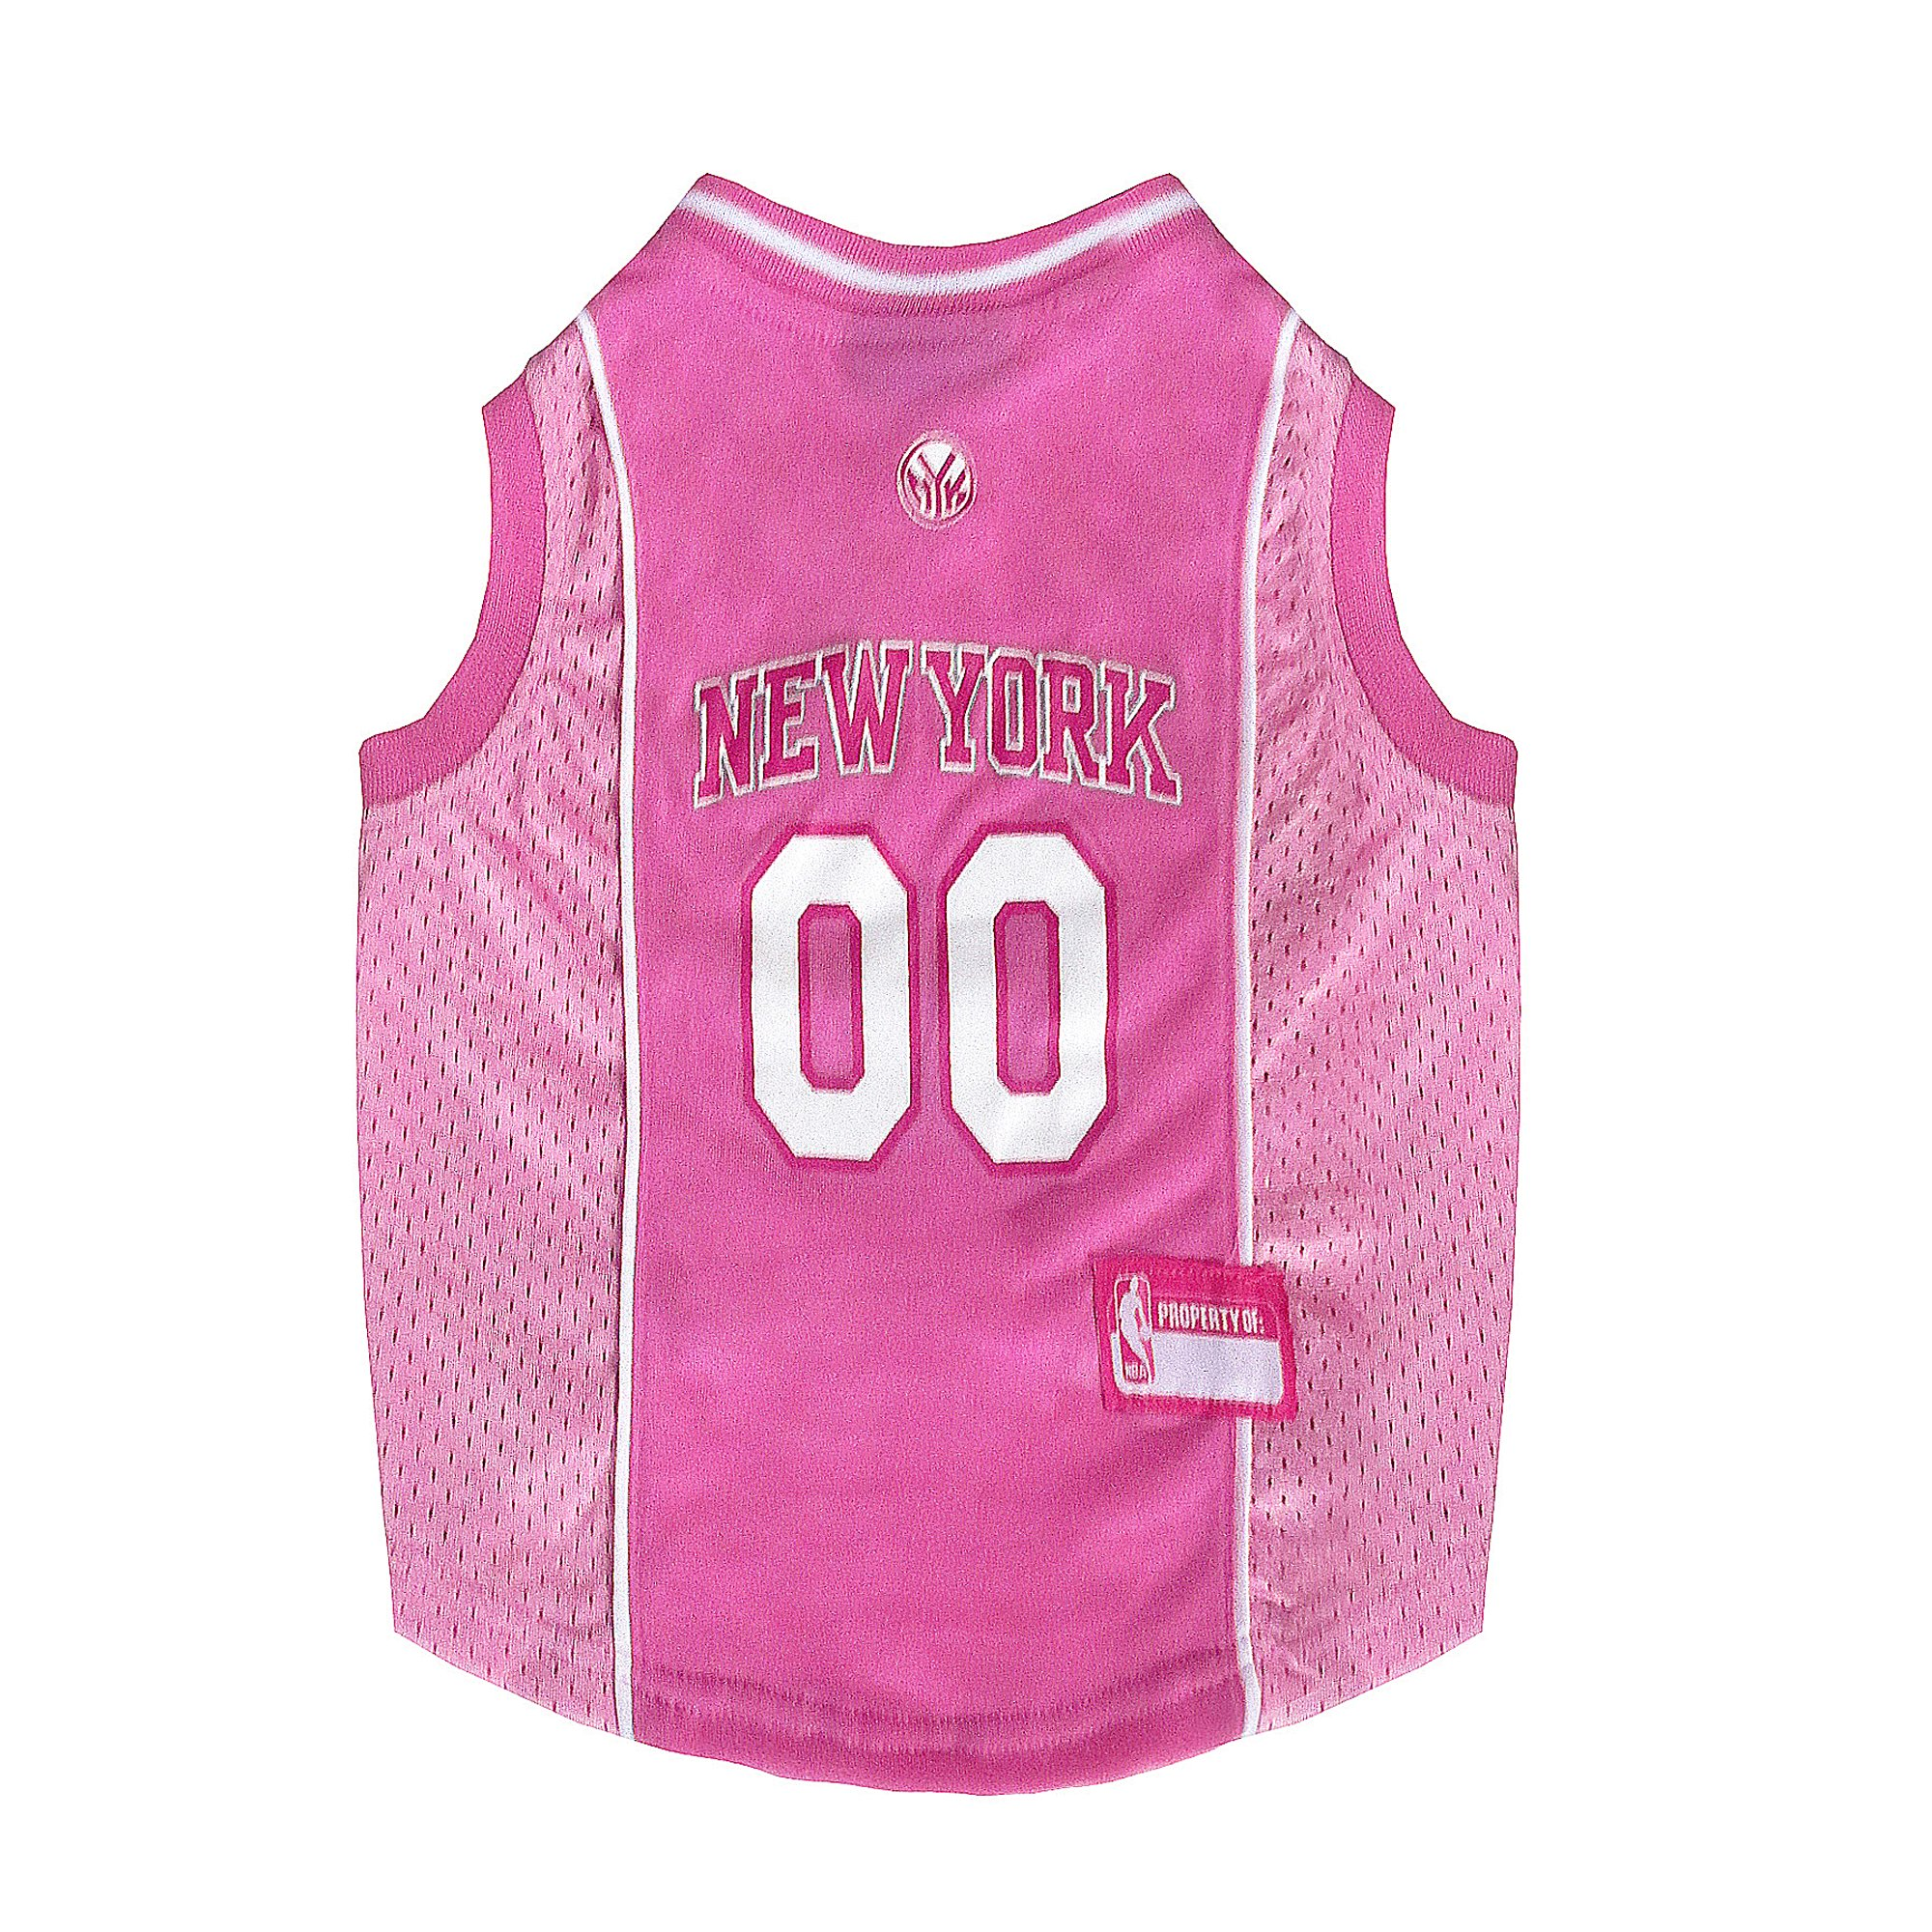 Pets First New York Knicks NBA Pink Jersey for Dogs 9b6f5266d